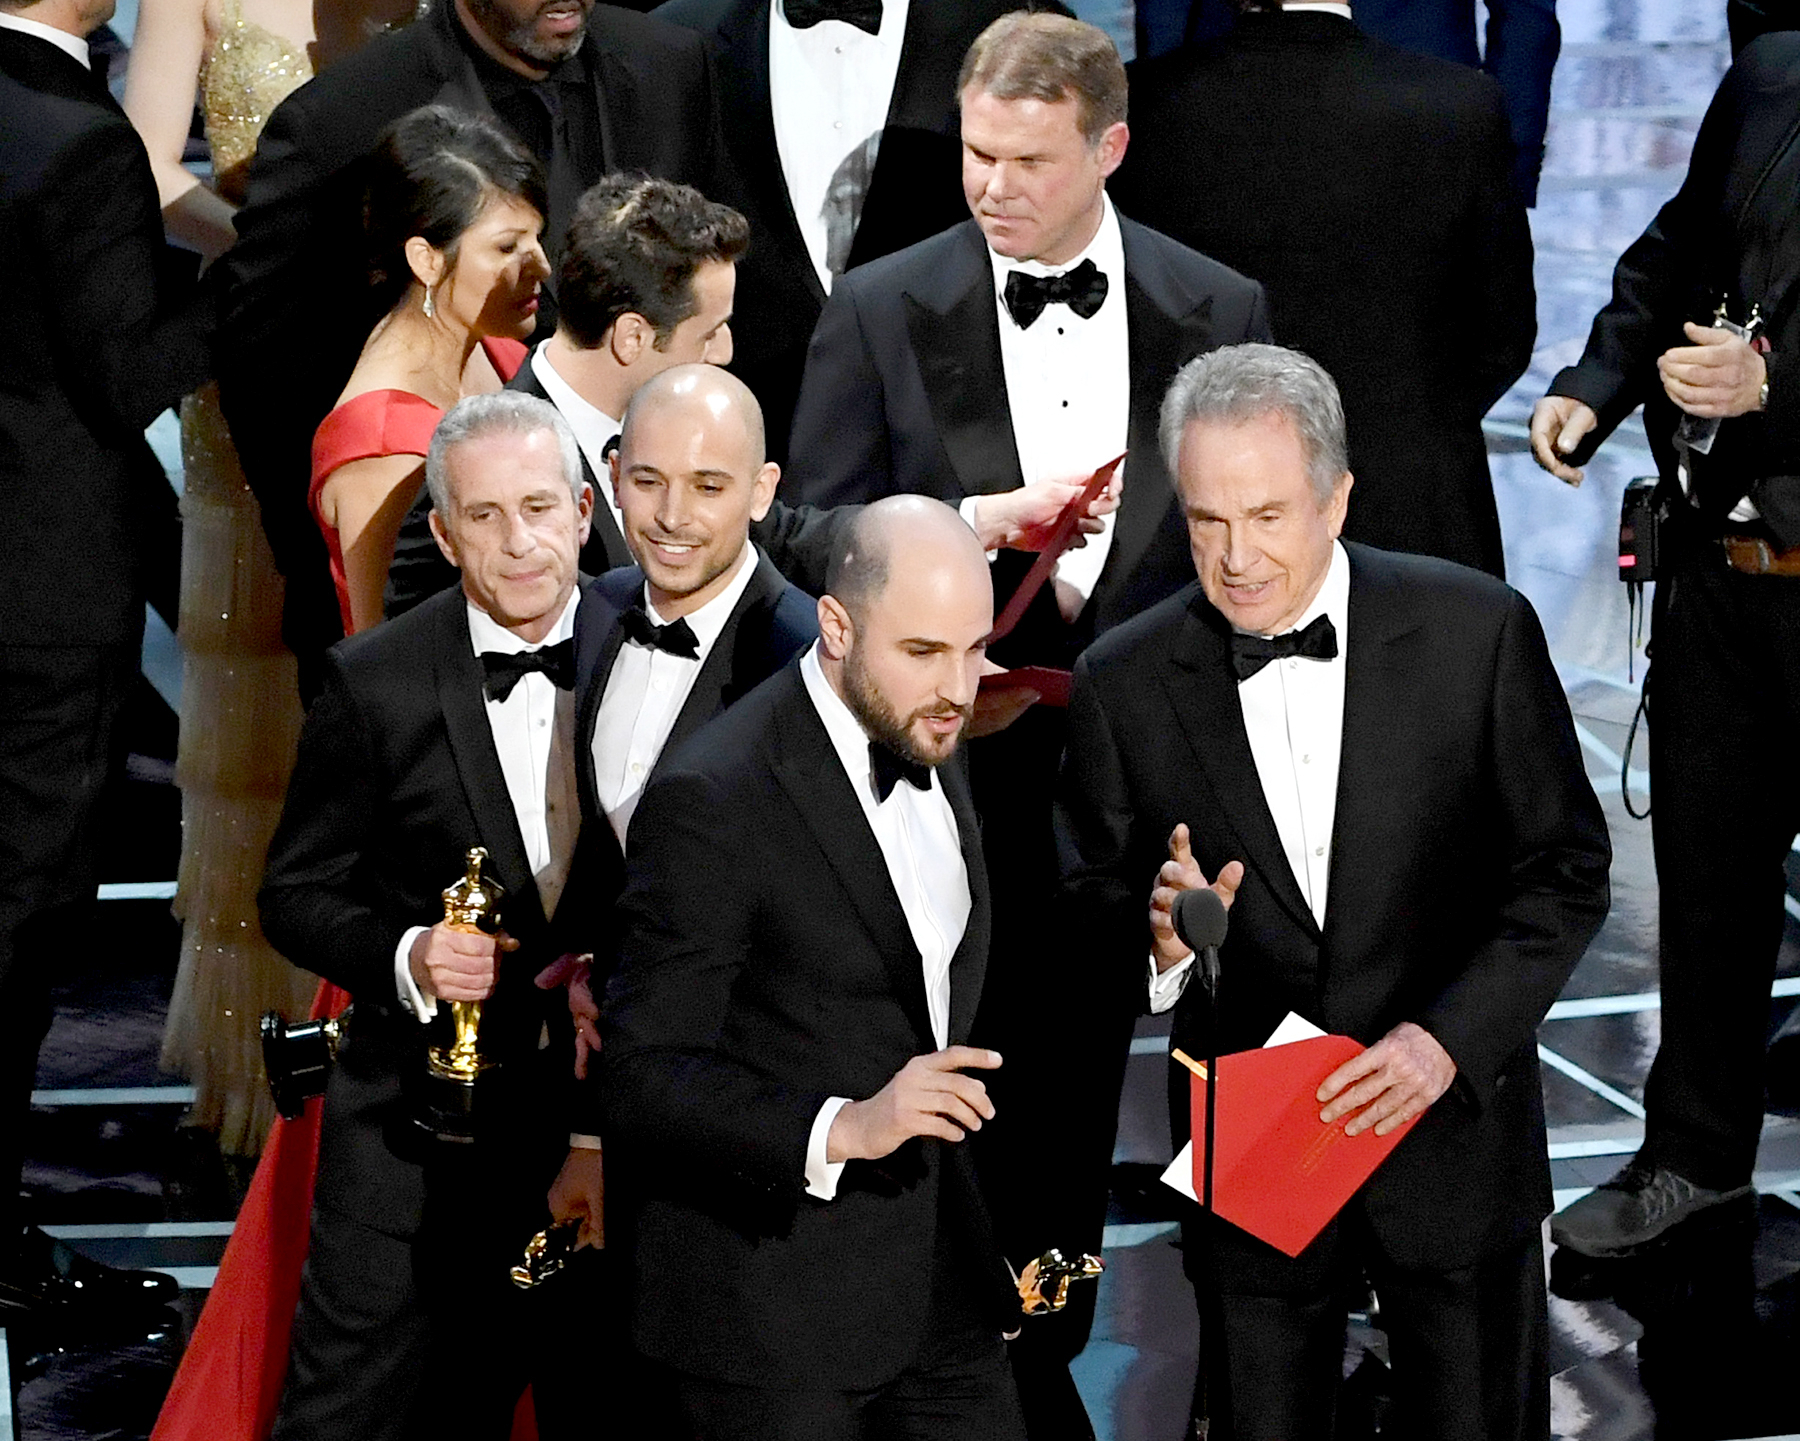 'La La Land' producer Jordan Horowitz (L) announces actual Best Picture winner as 'Moonlight' after a presentation error with actor Warren Beatty onstage during the 89th Annual Academy Awards at Hollywood & Highland Center on February 26, 2017 in Hollywood, California.